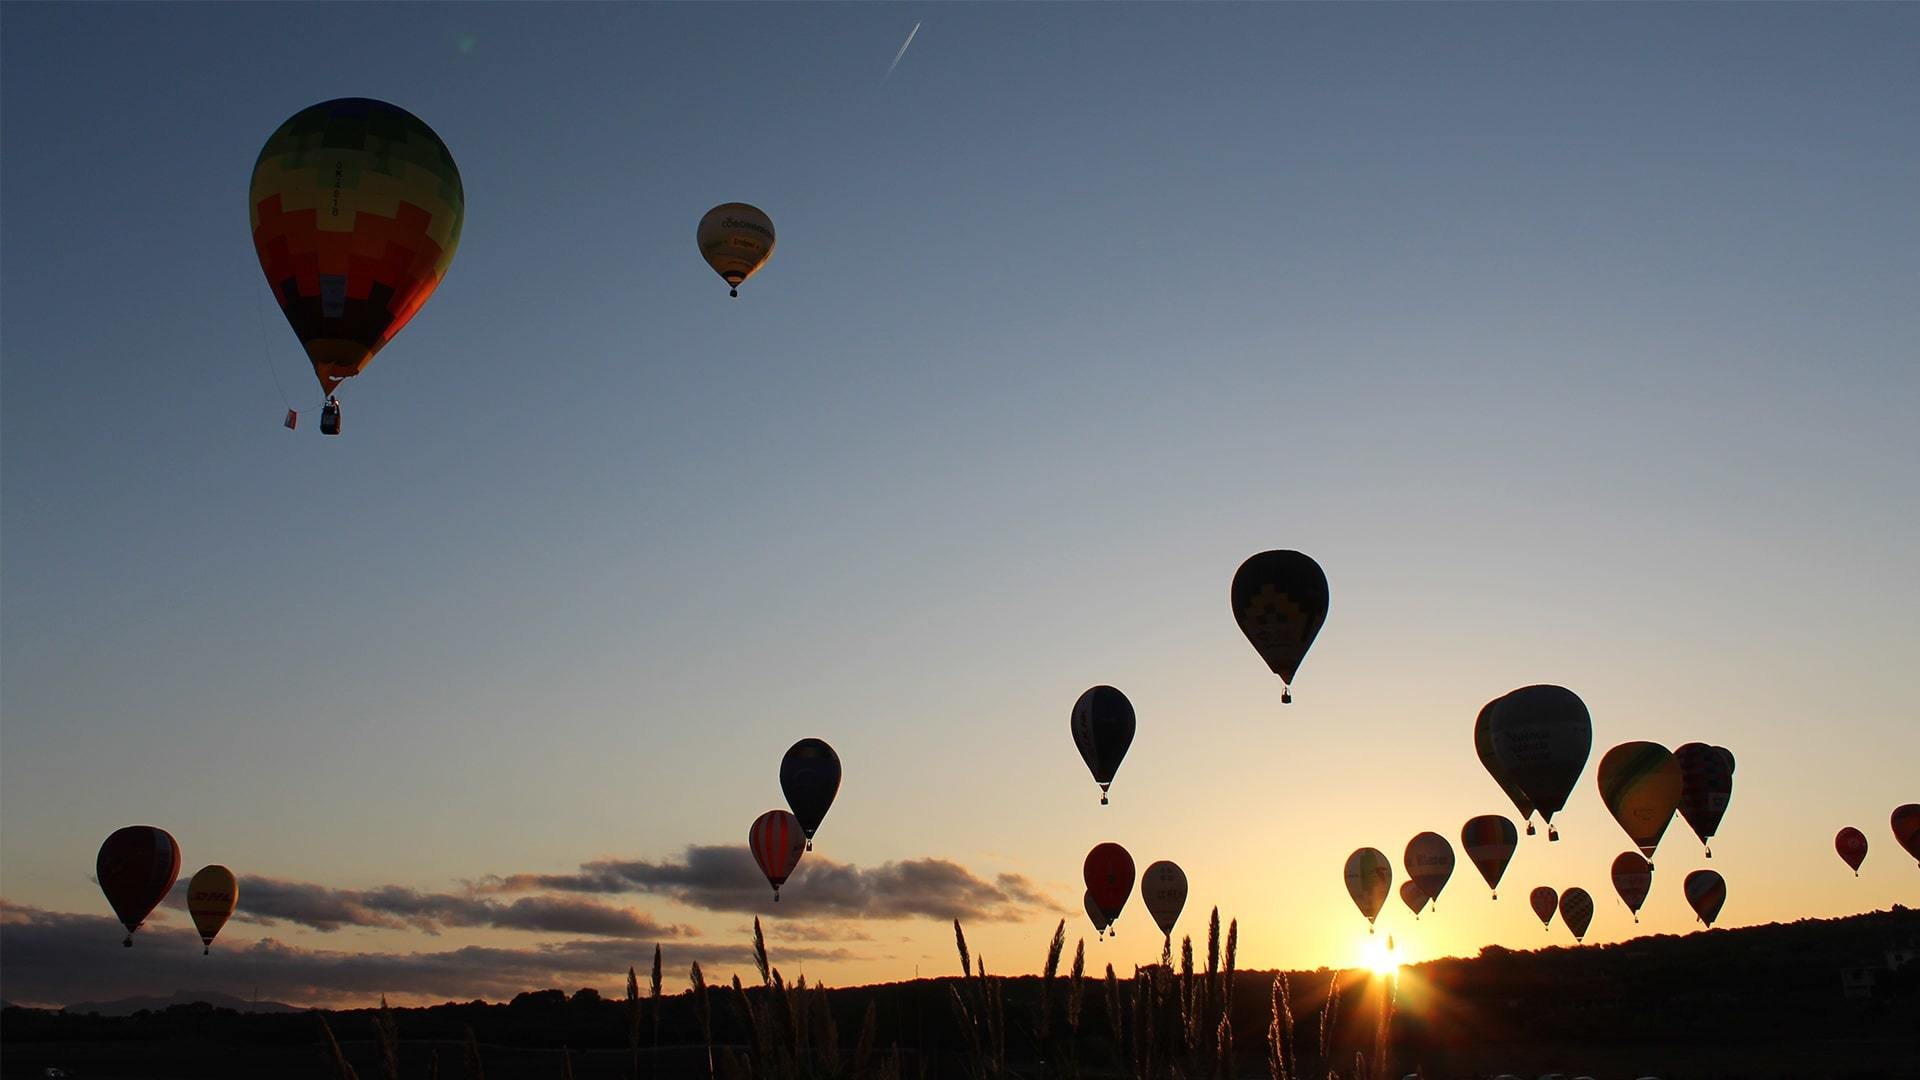 Hot air balloons over Mallorca sunrise photo Adele Chretien min